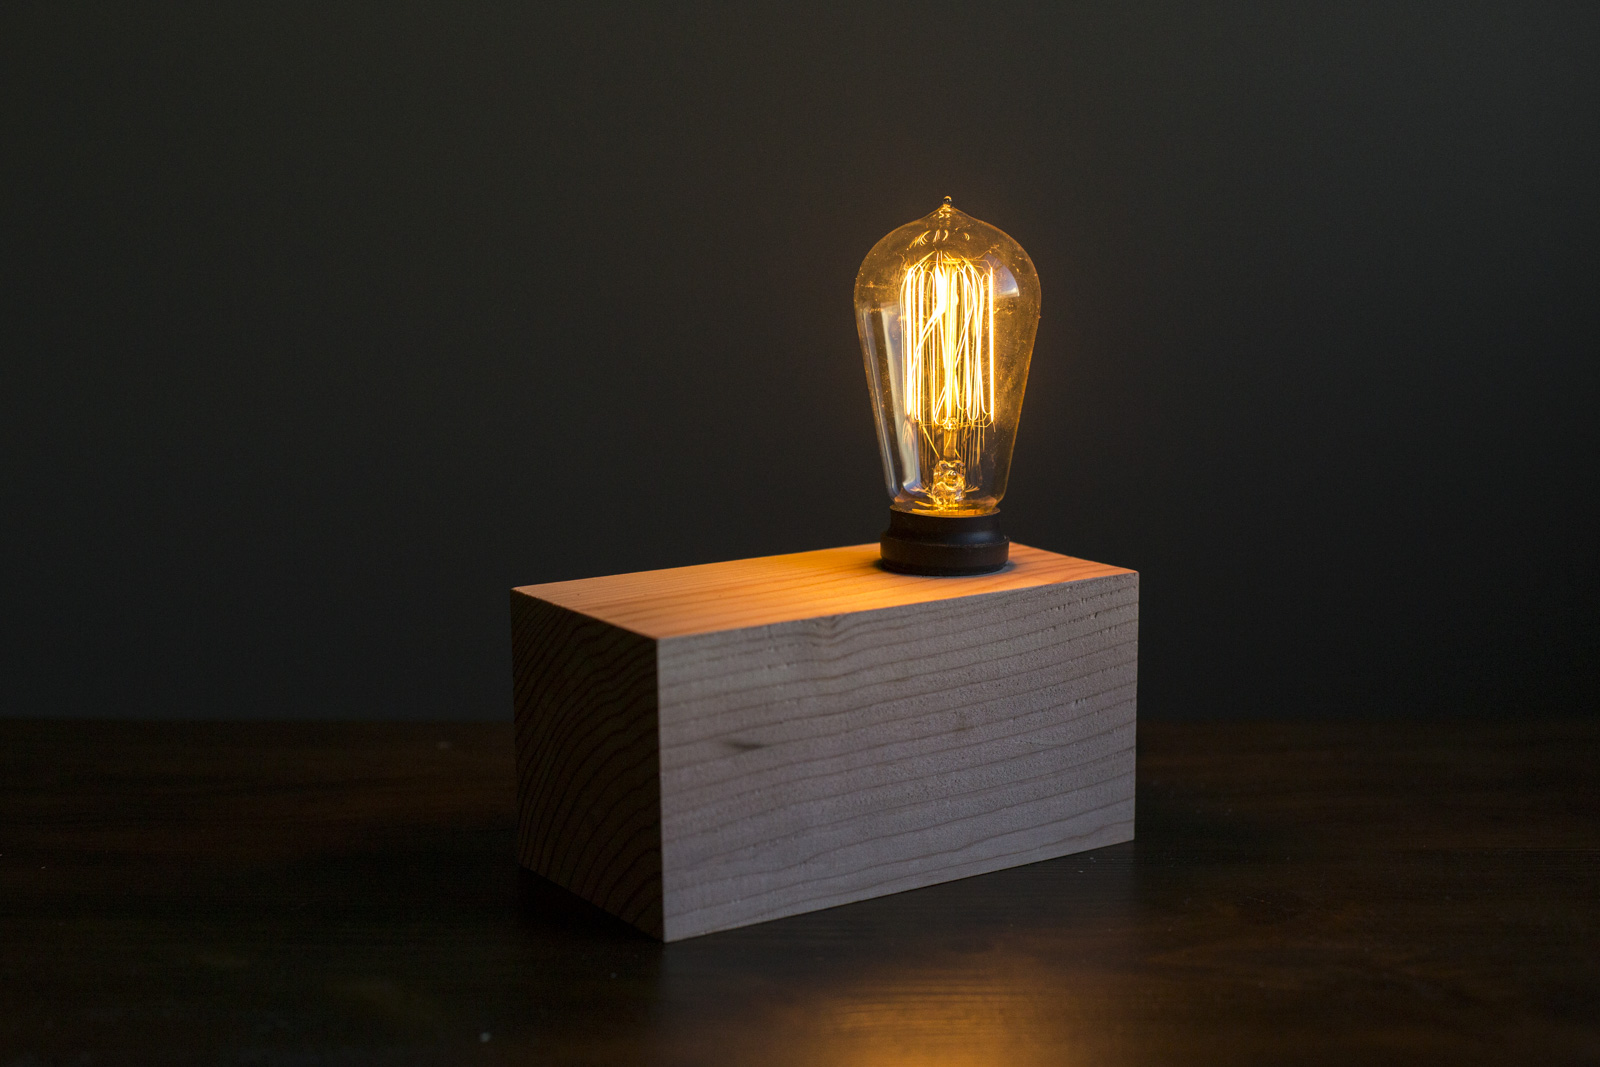 How to Make a DIY Edison Lamp - Home Improvement Projects to ...